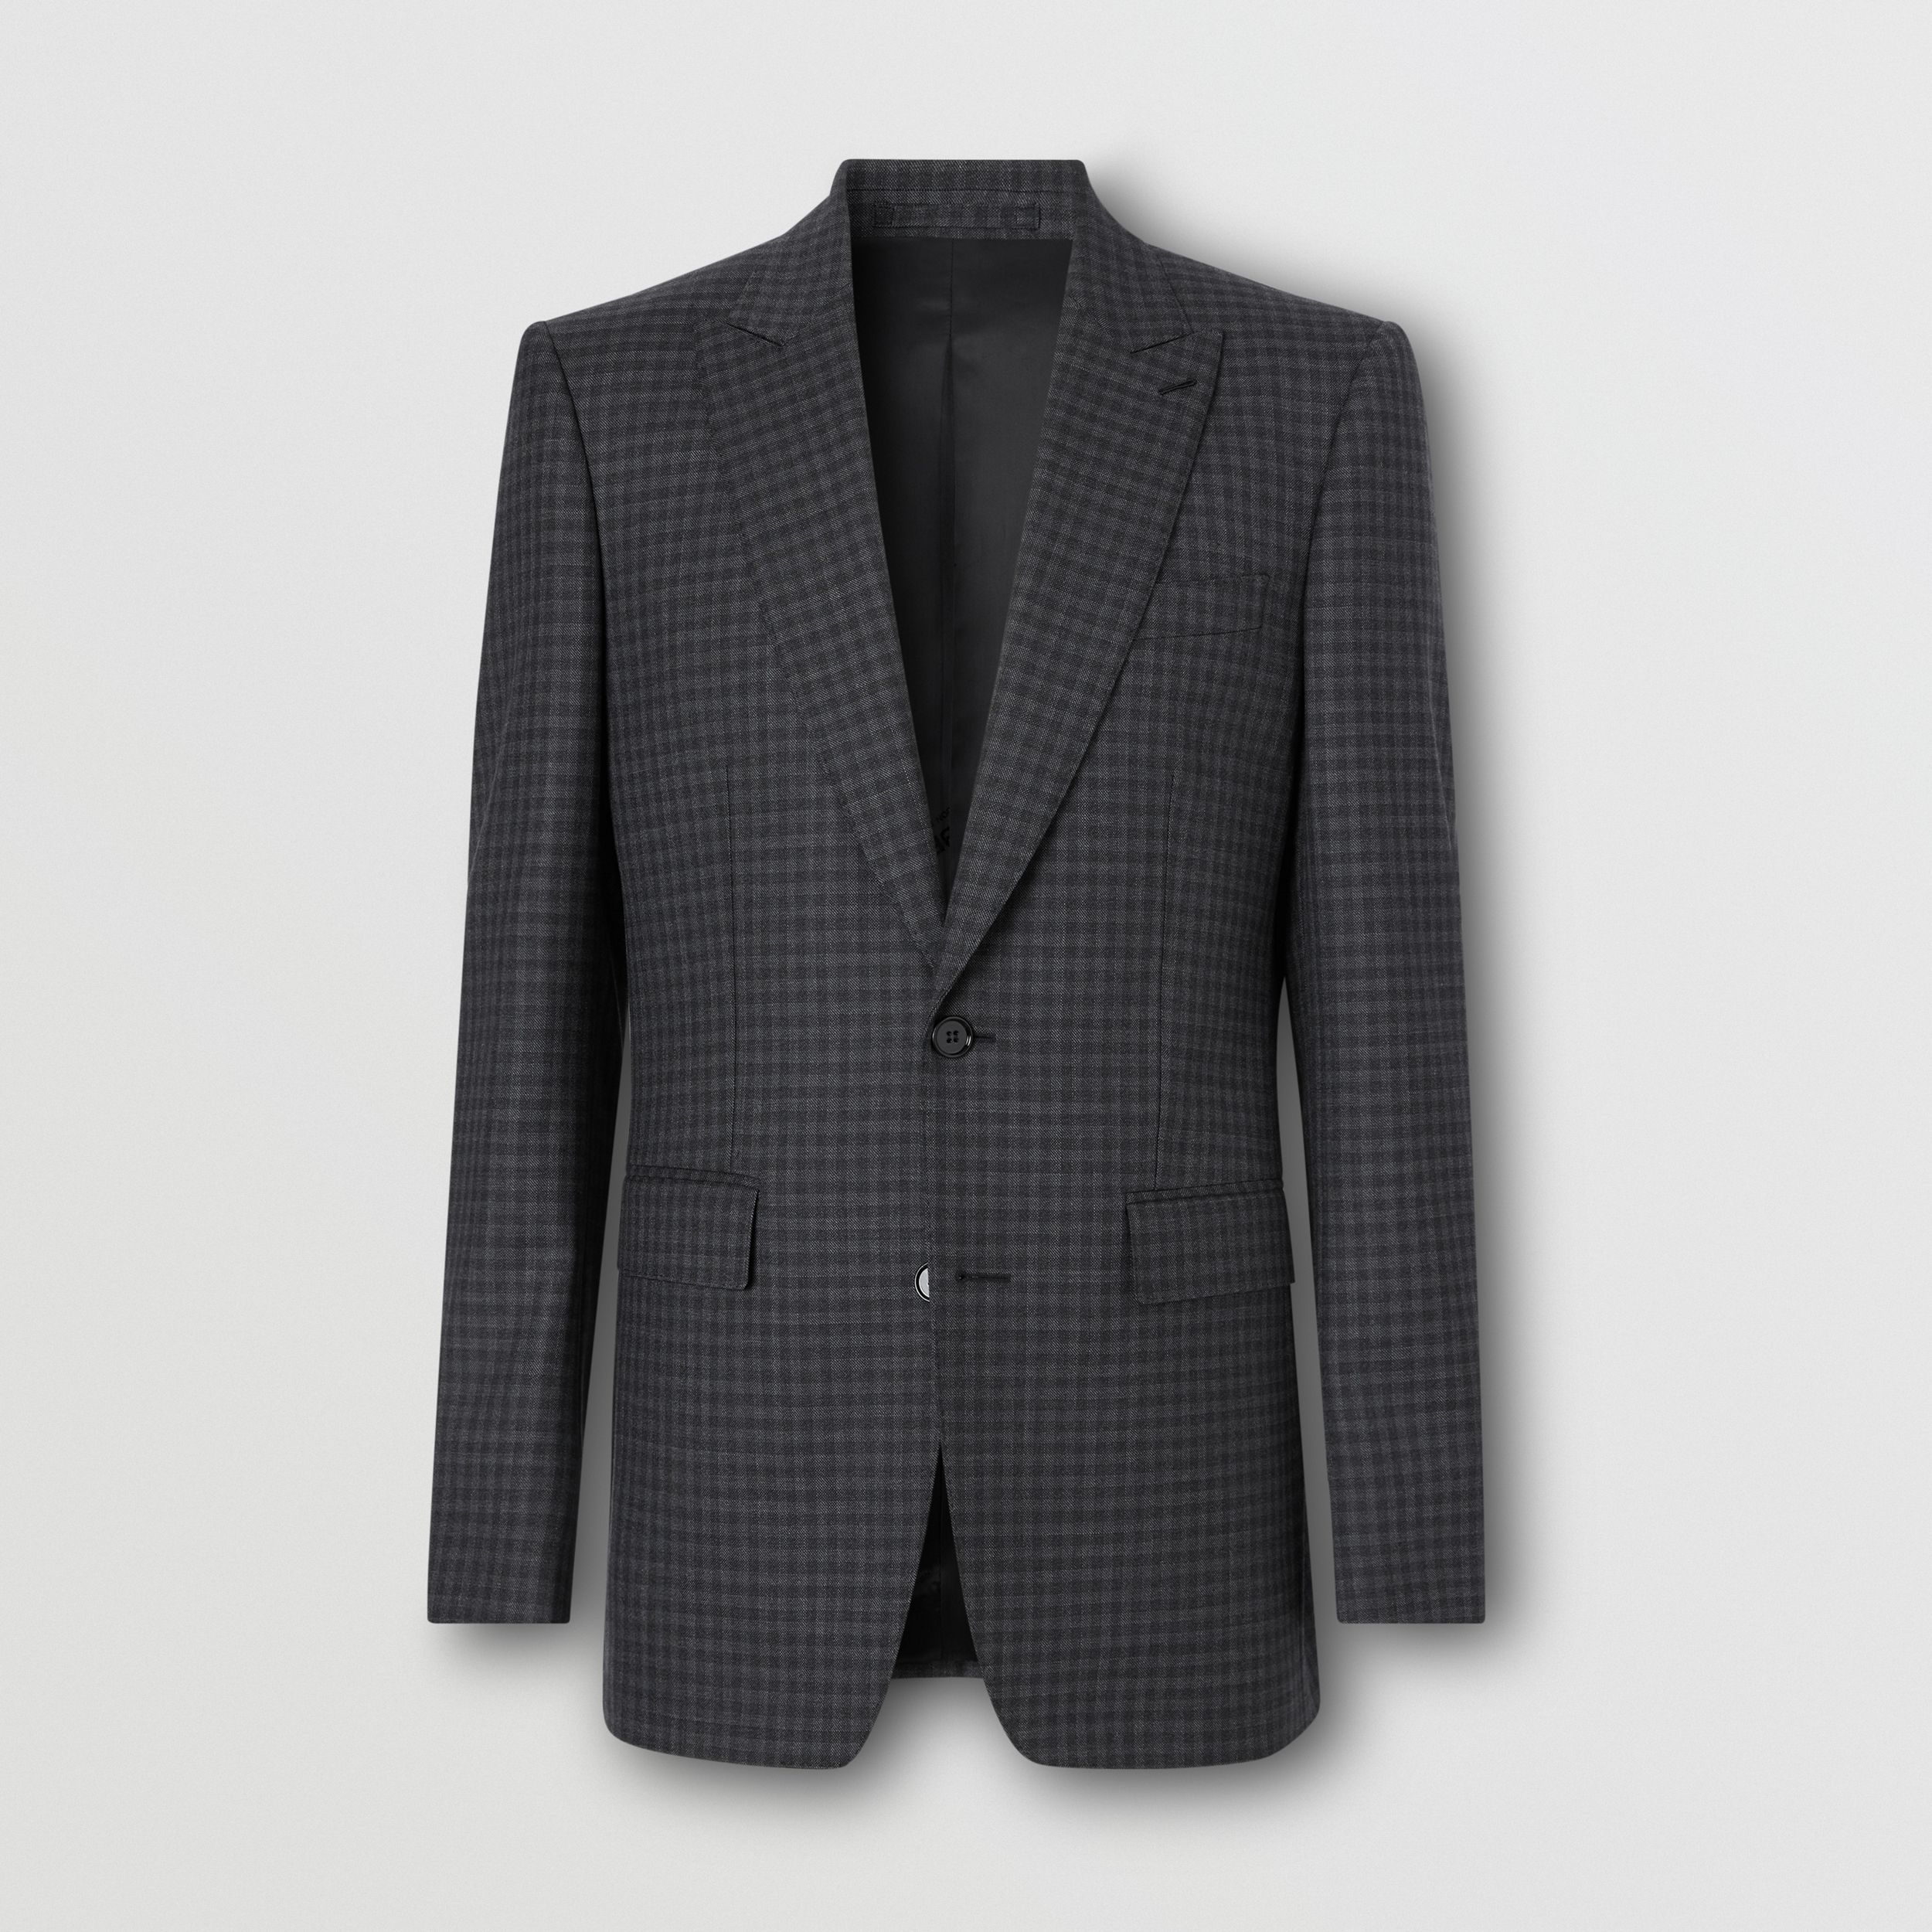 English Fit Gingham Wool Suit in Charcoal - Men | Burberry - 4